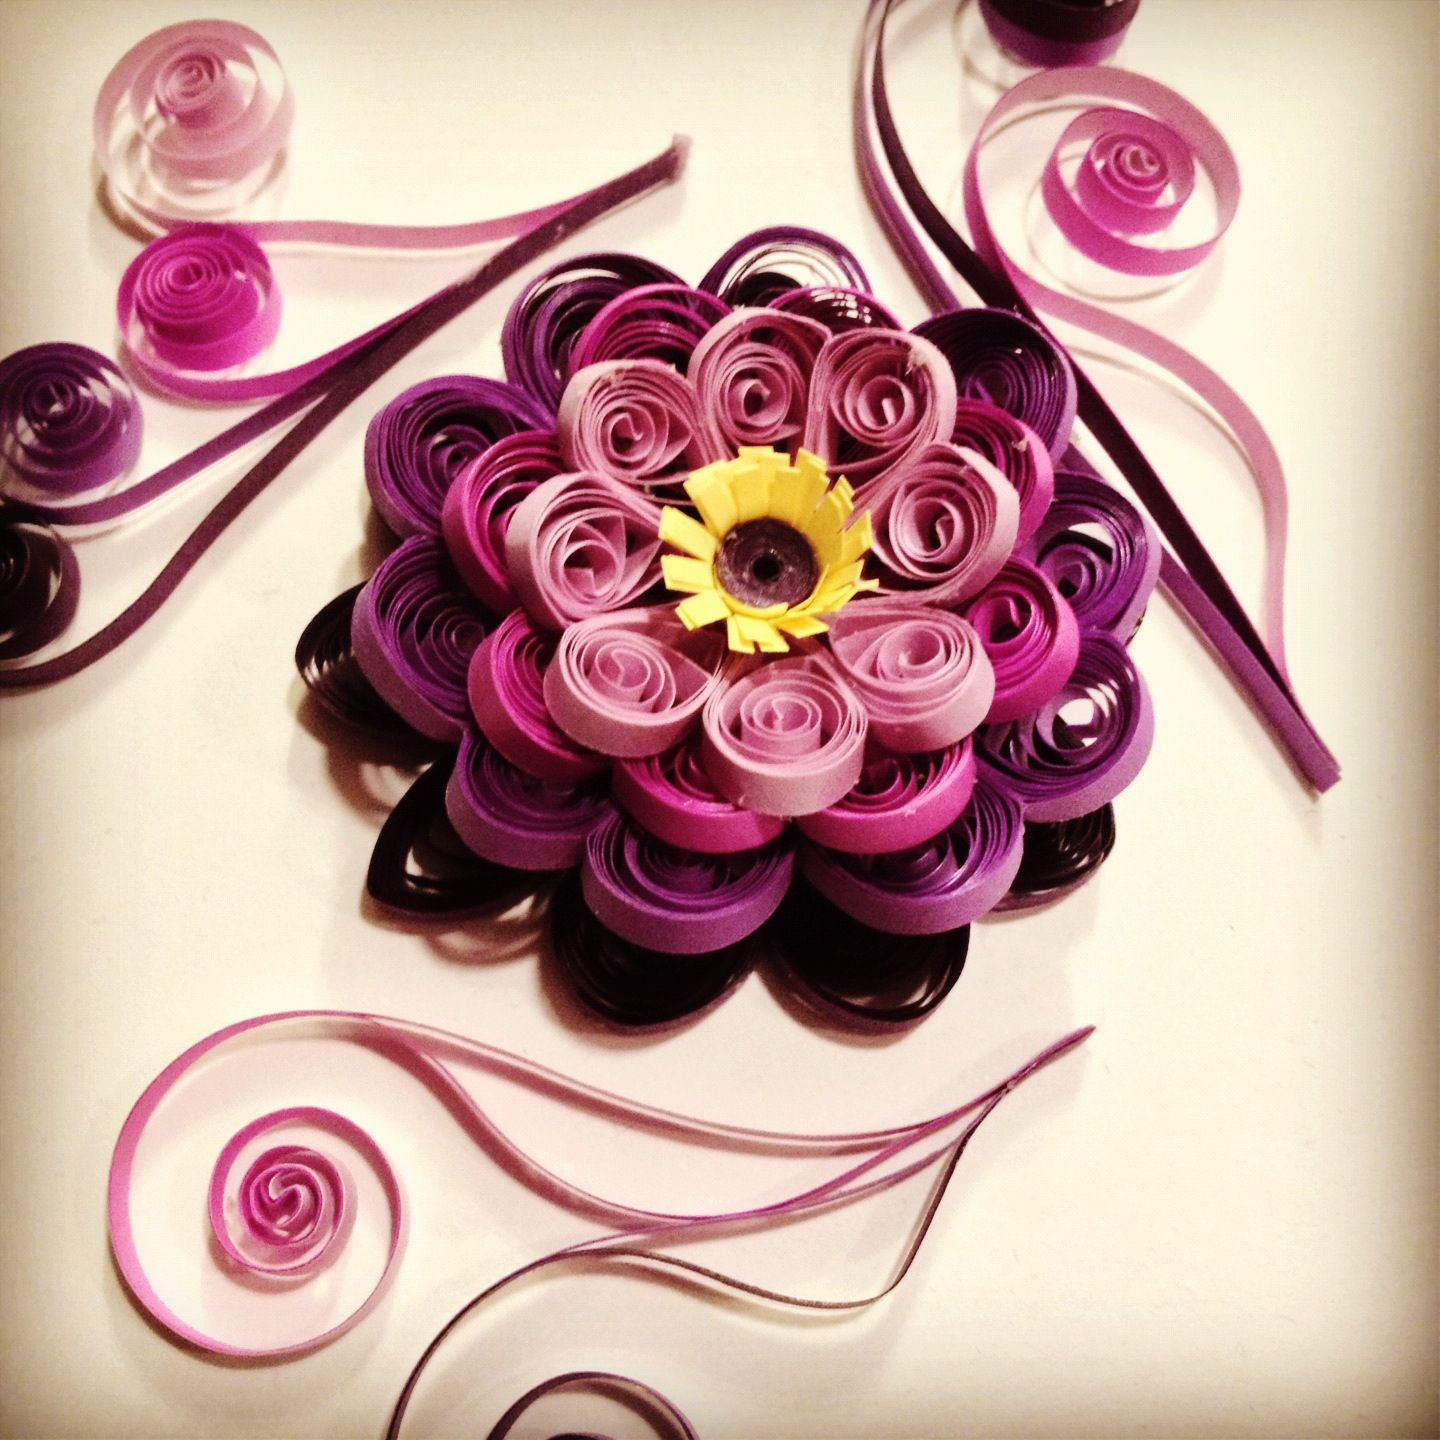 My newest quilling project quilling 2 pinterest for Paper quilling art projects